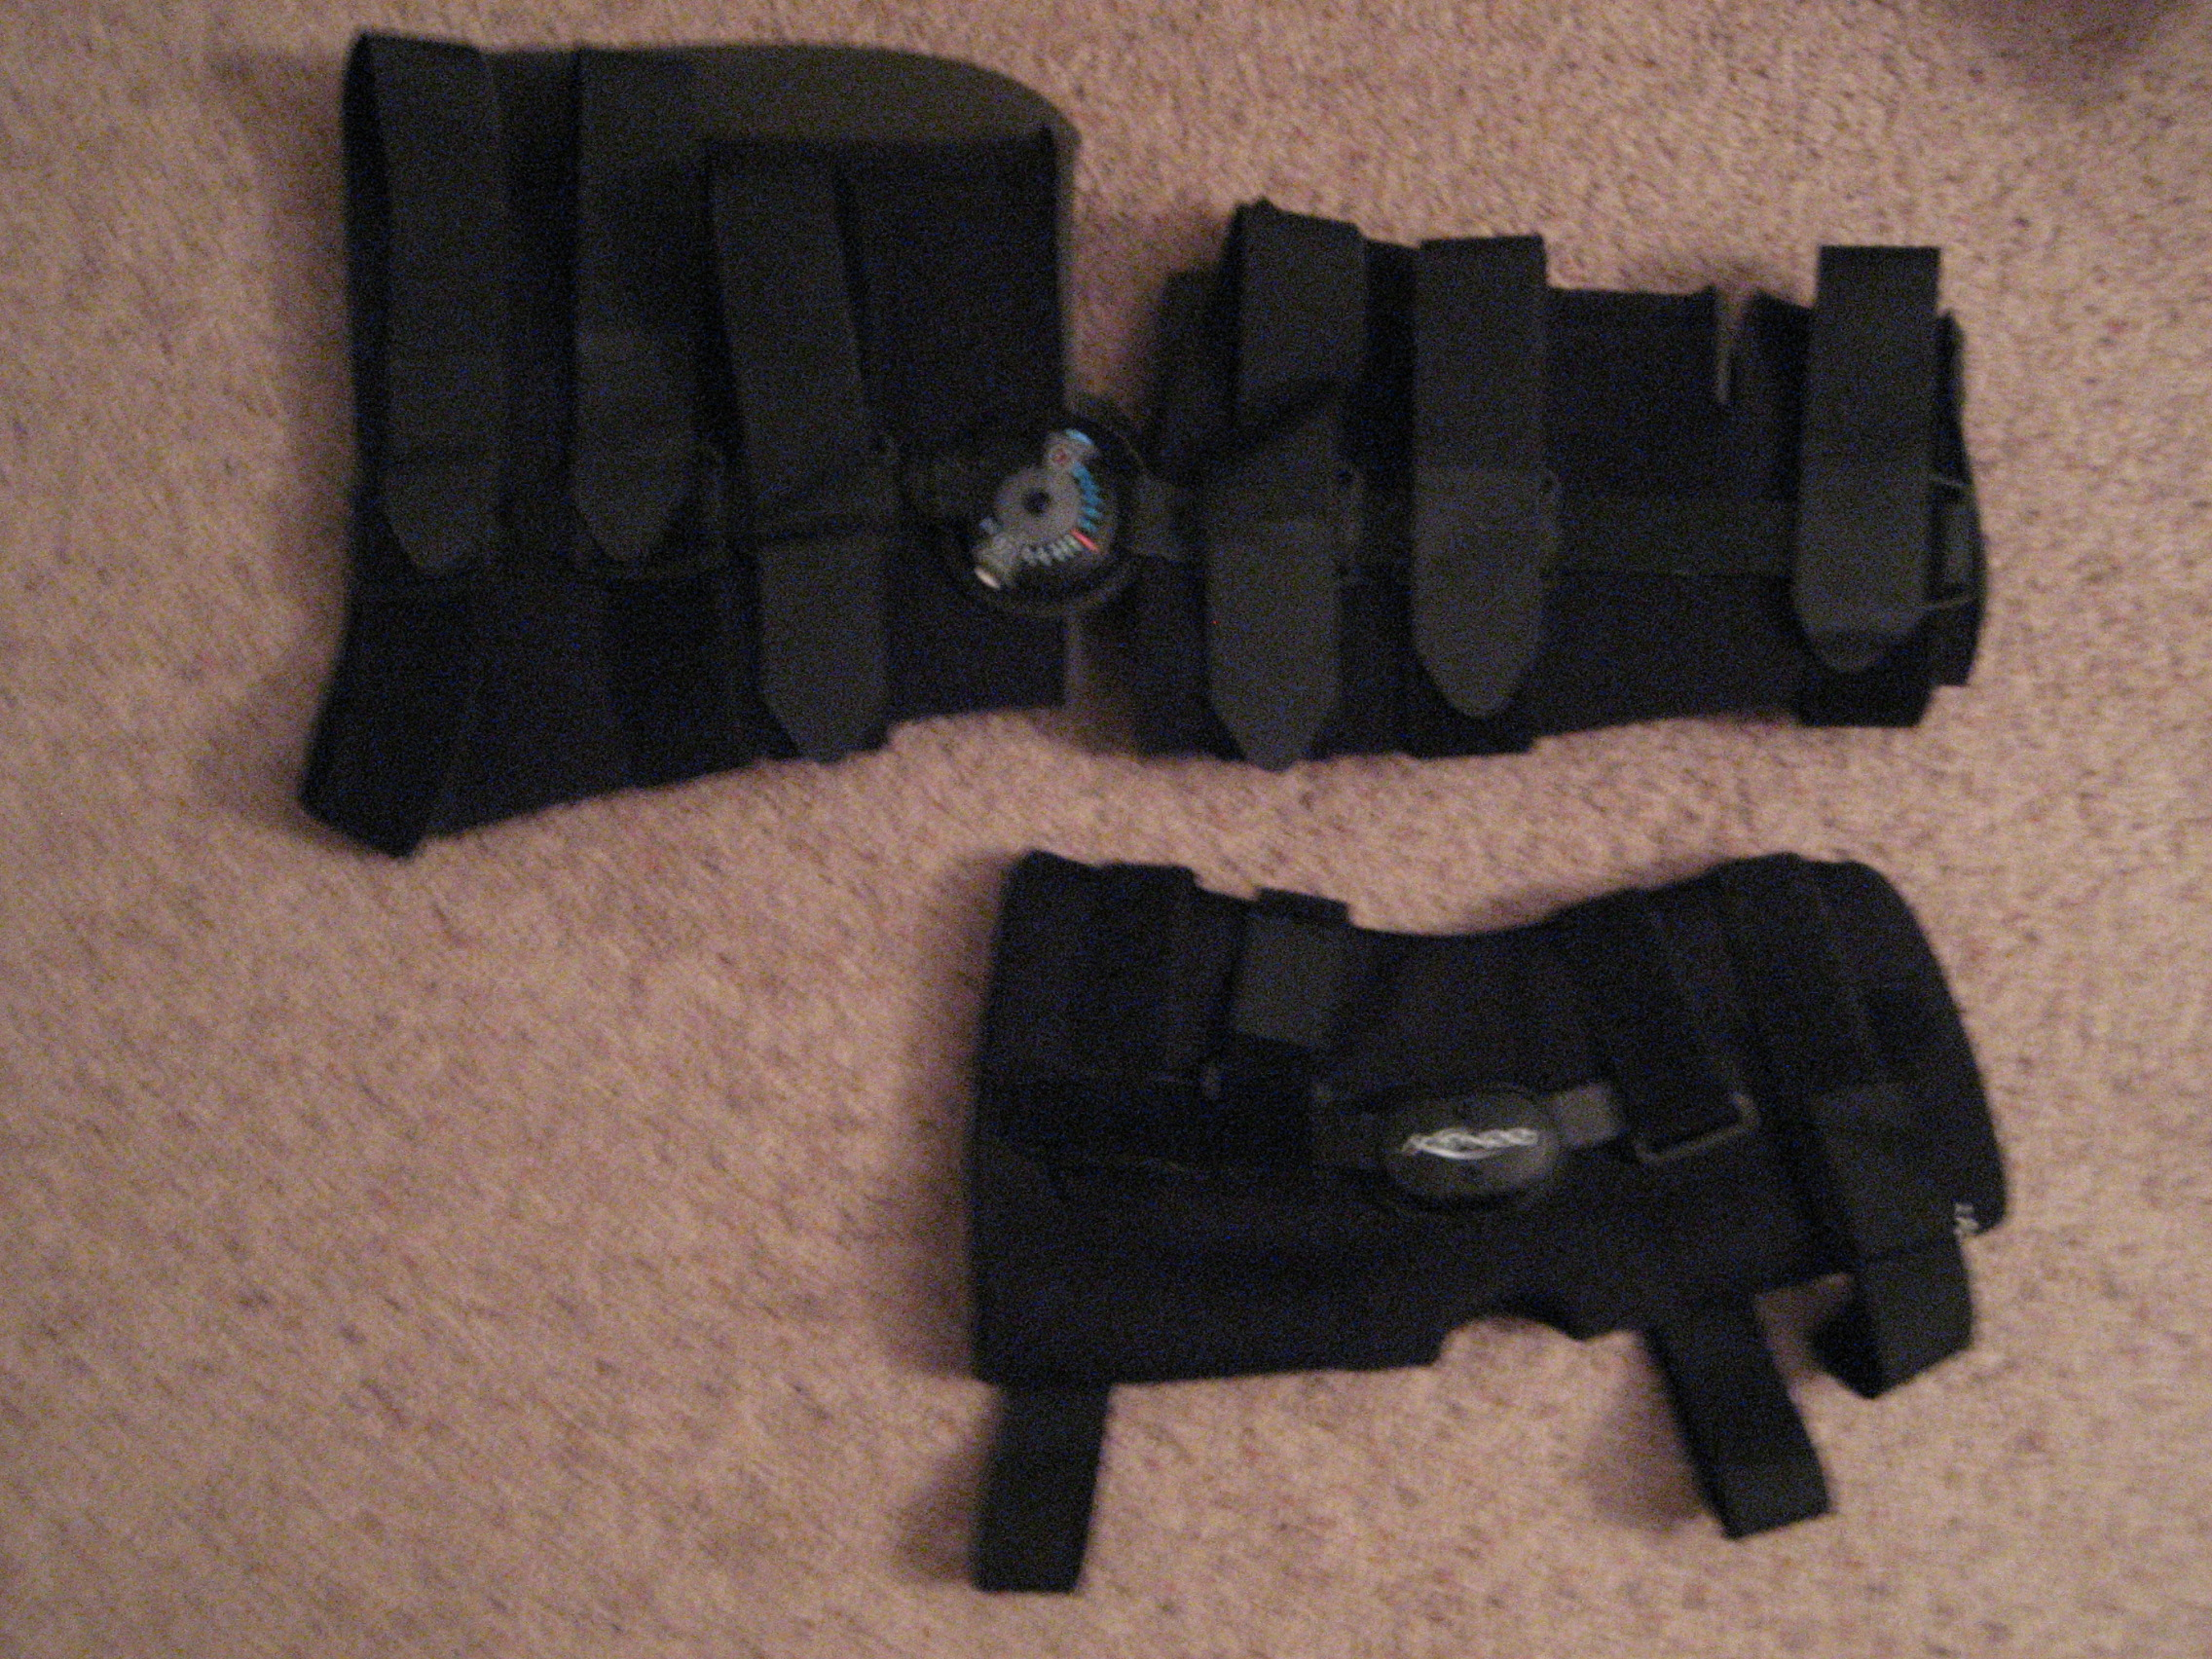 leg braces: compared